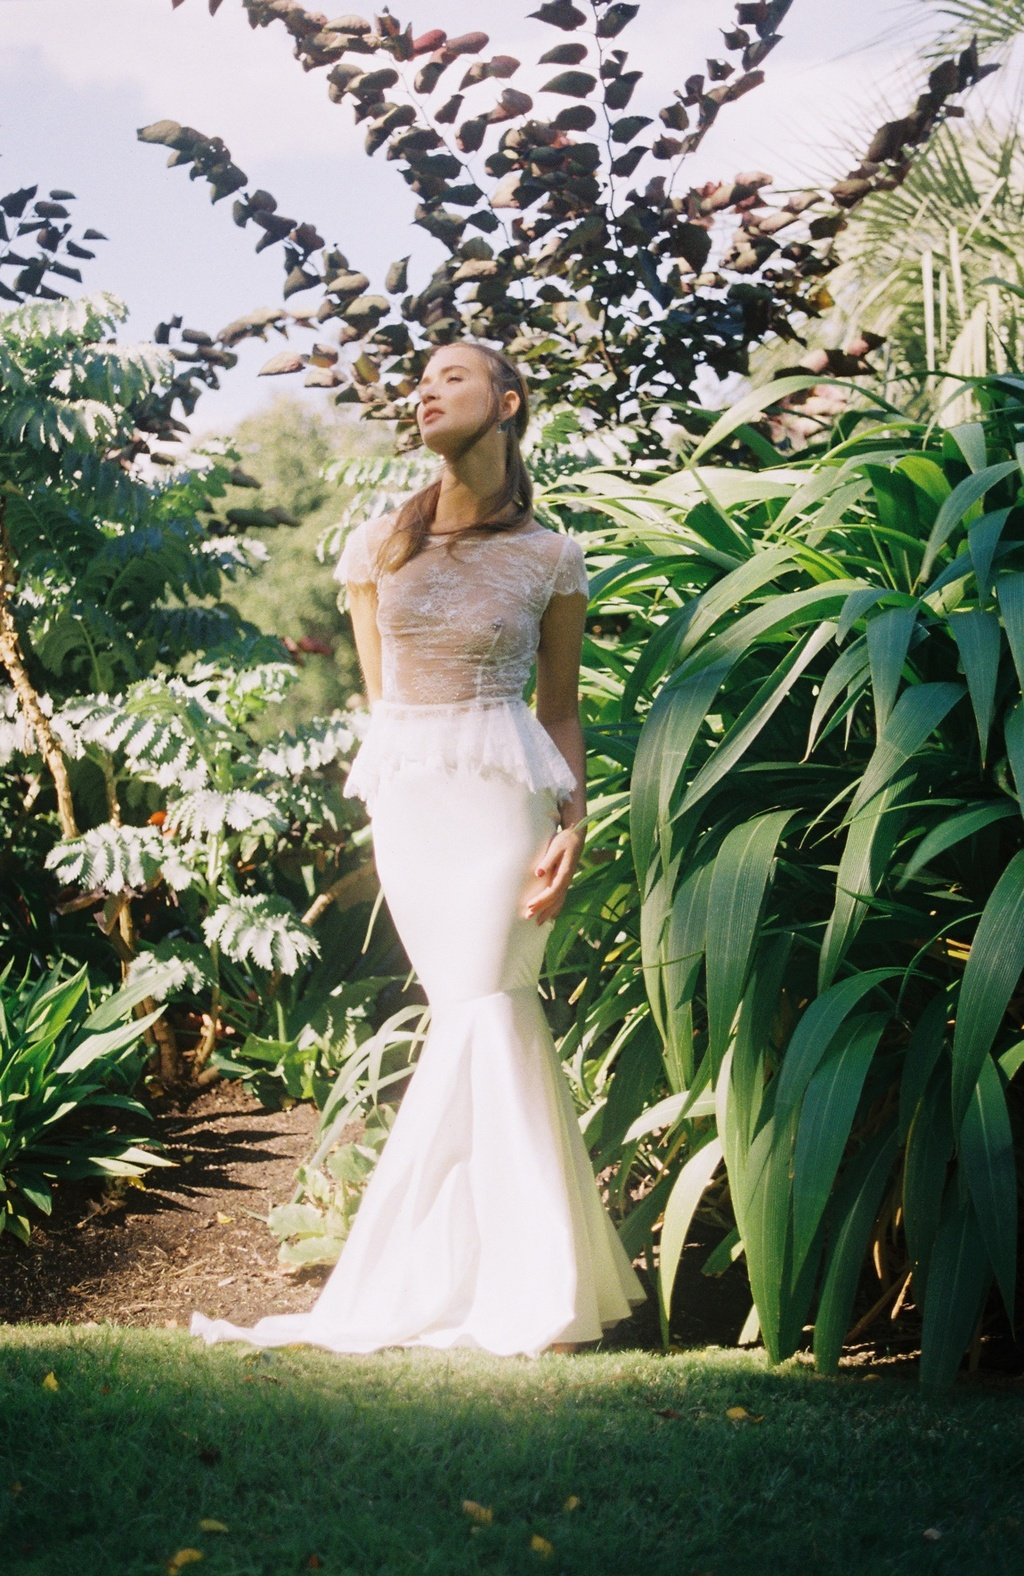 Wedding-dress-by-mariana-hardwick-a-provincial-romance-bridal-collection-5.full